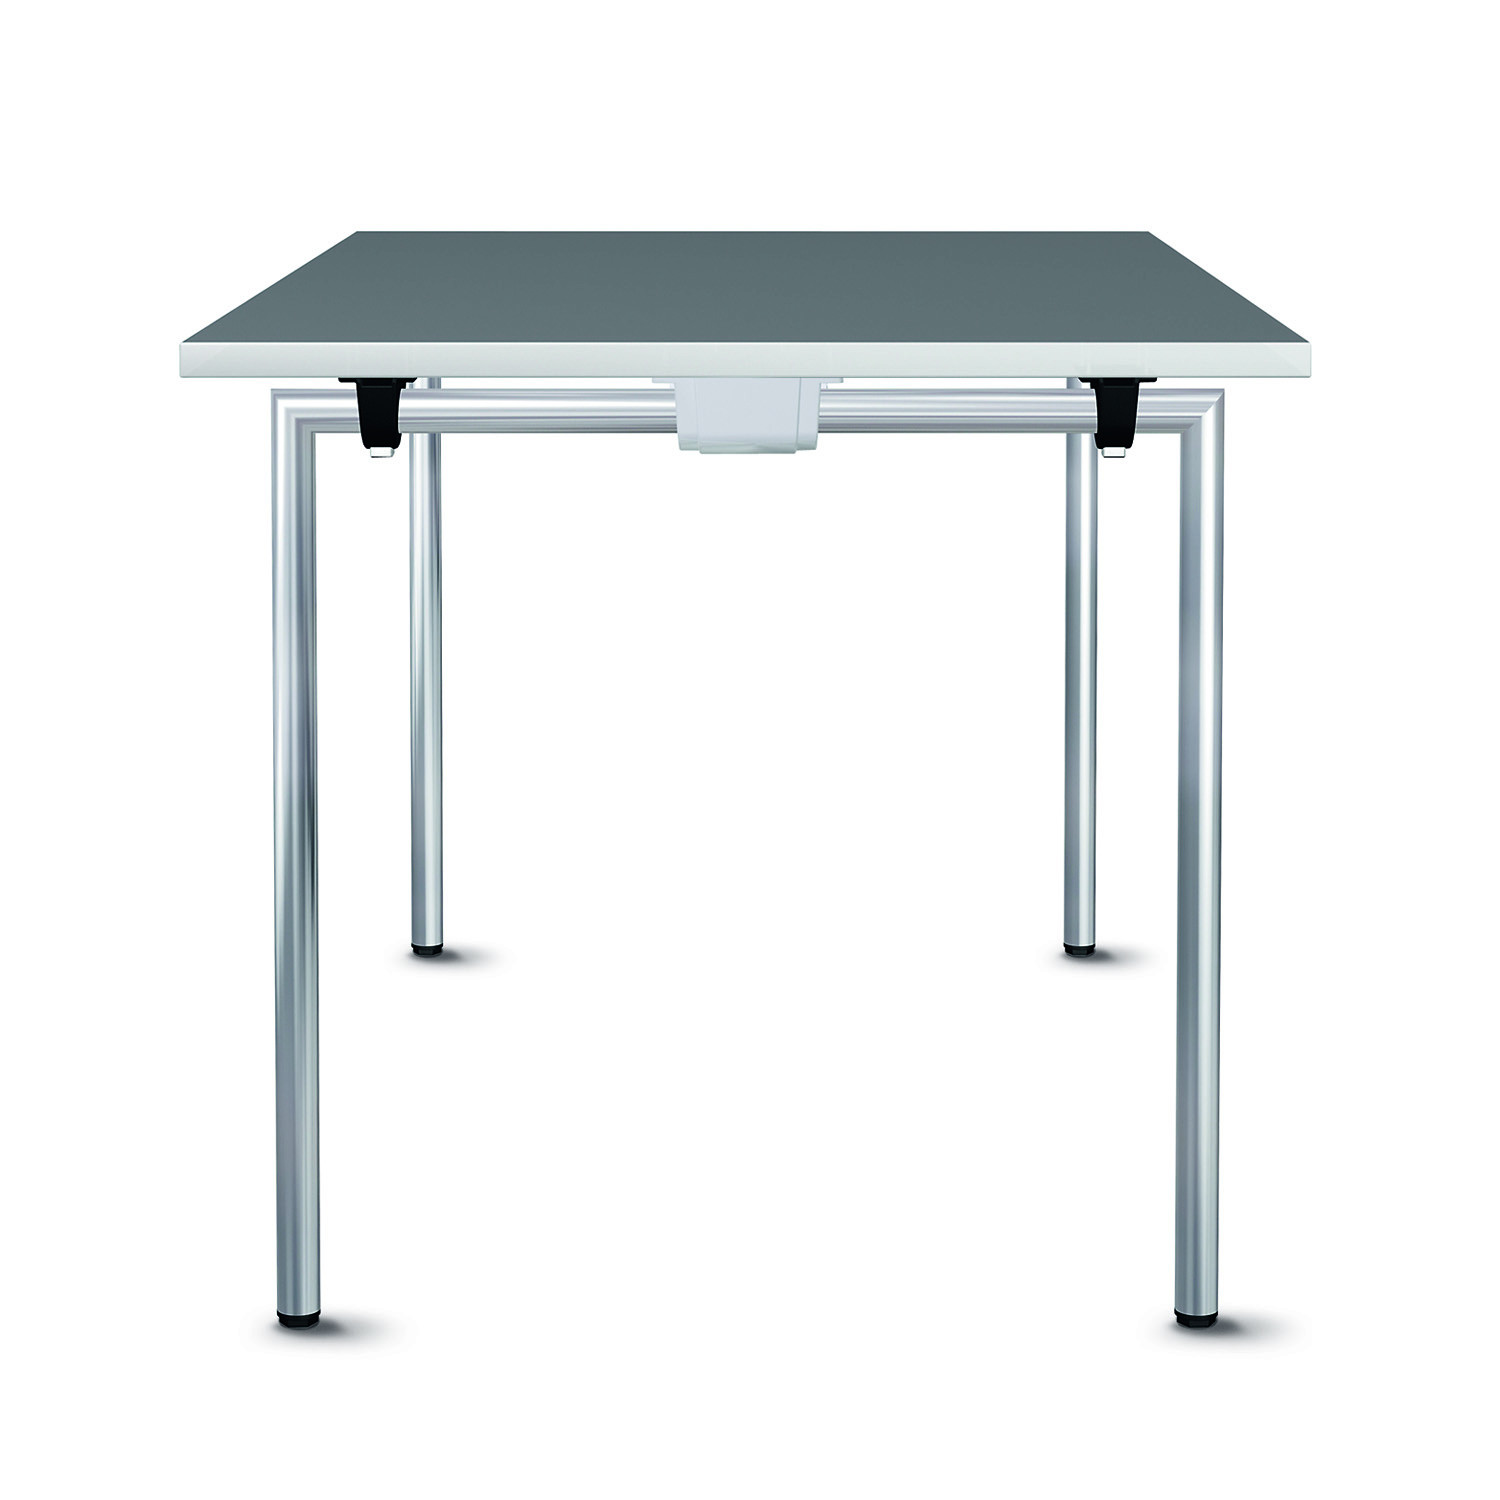 Plenar 2 Conference Tables